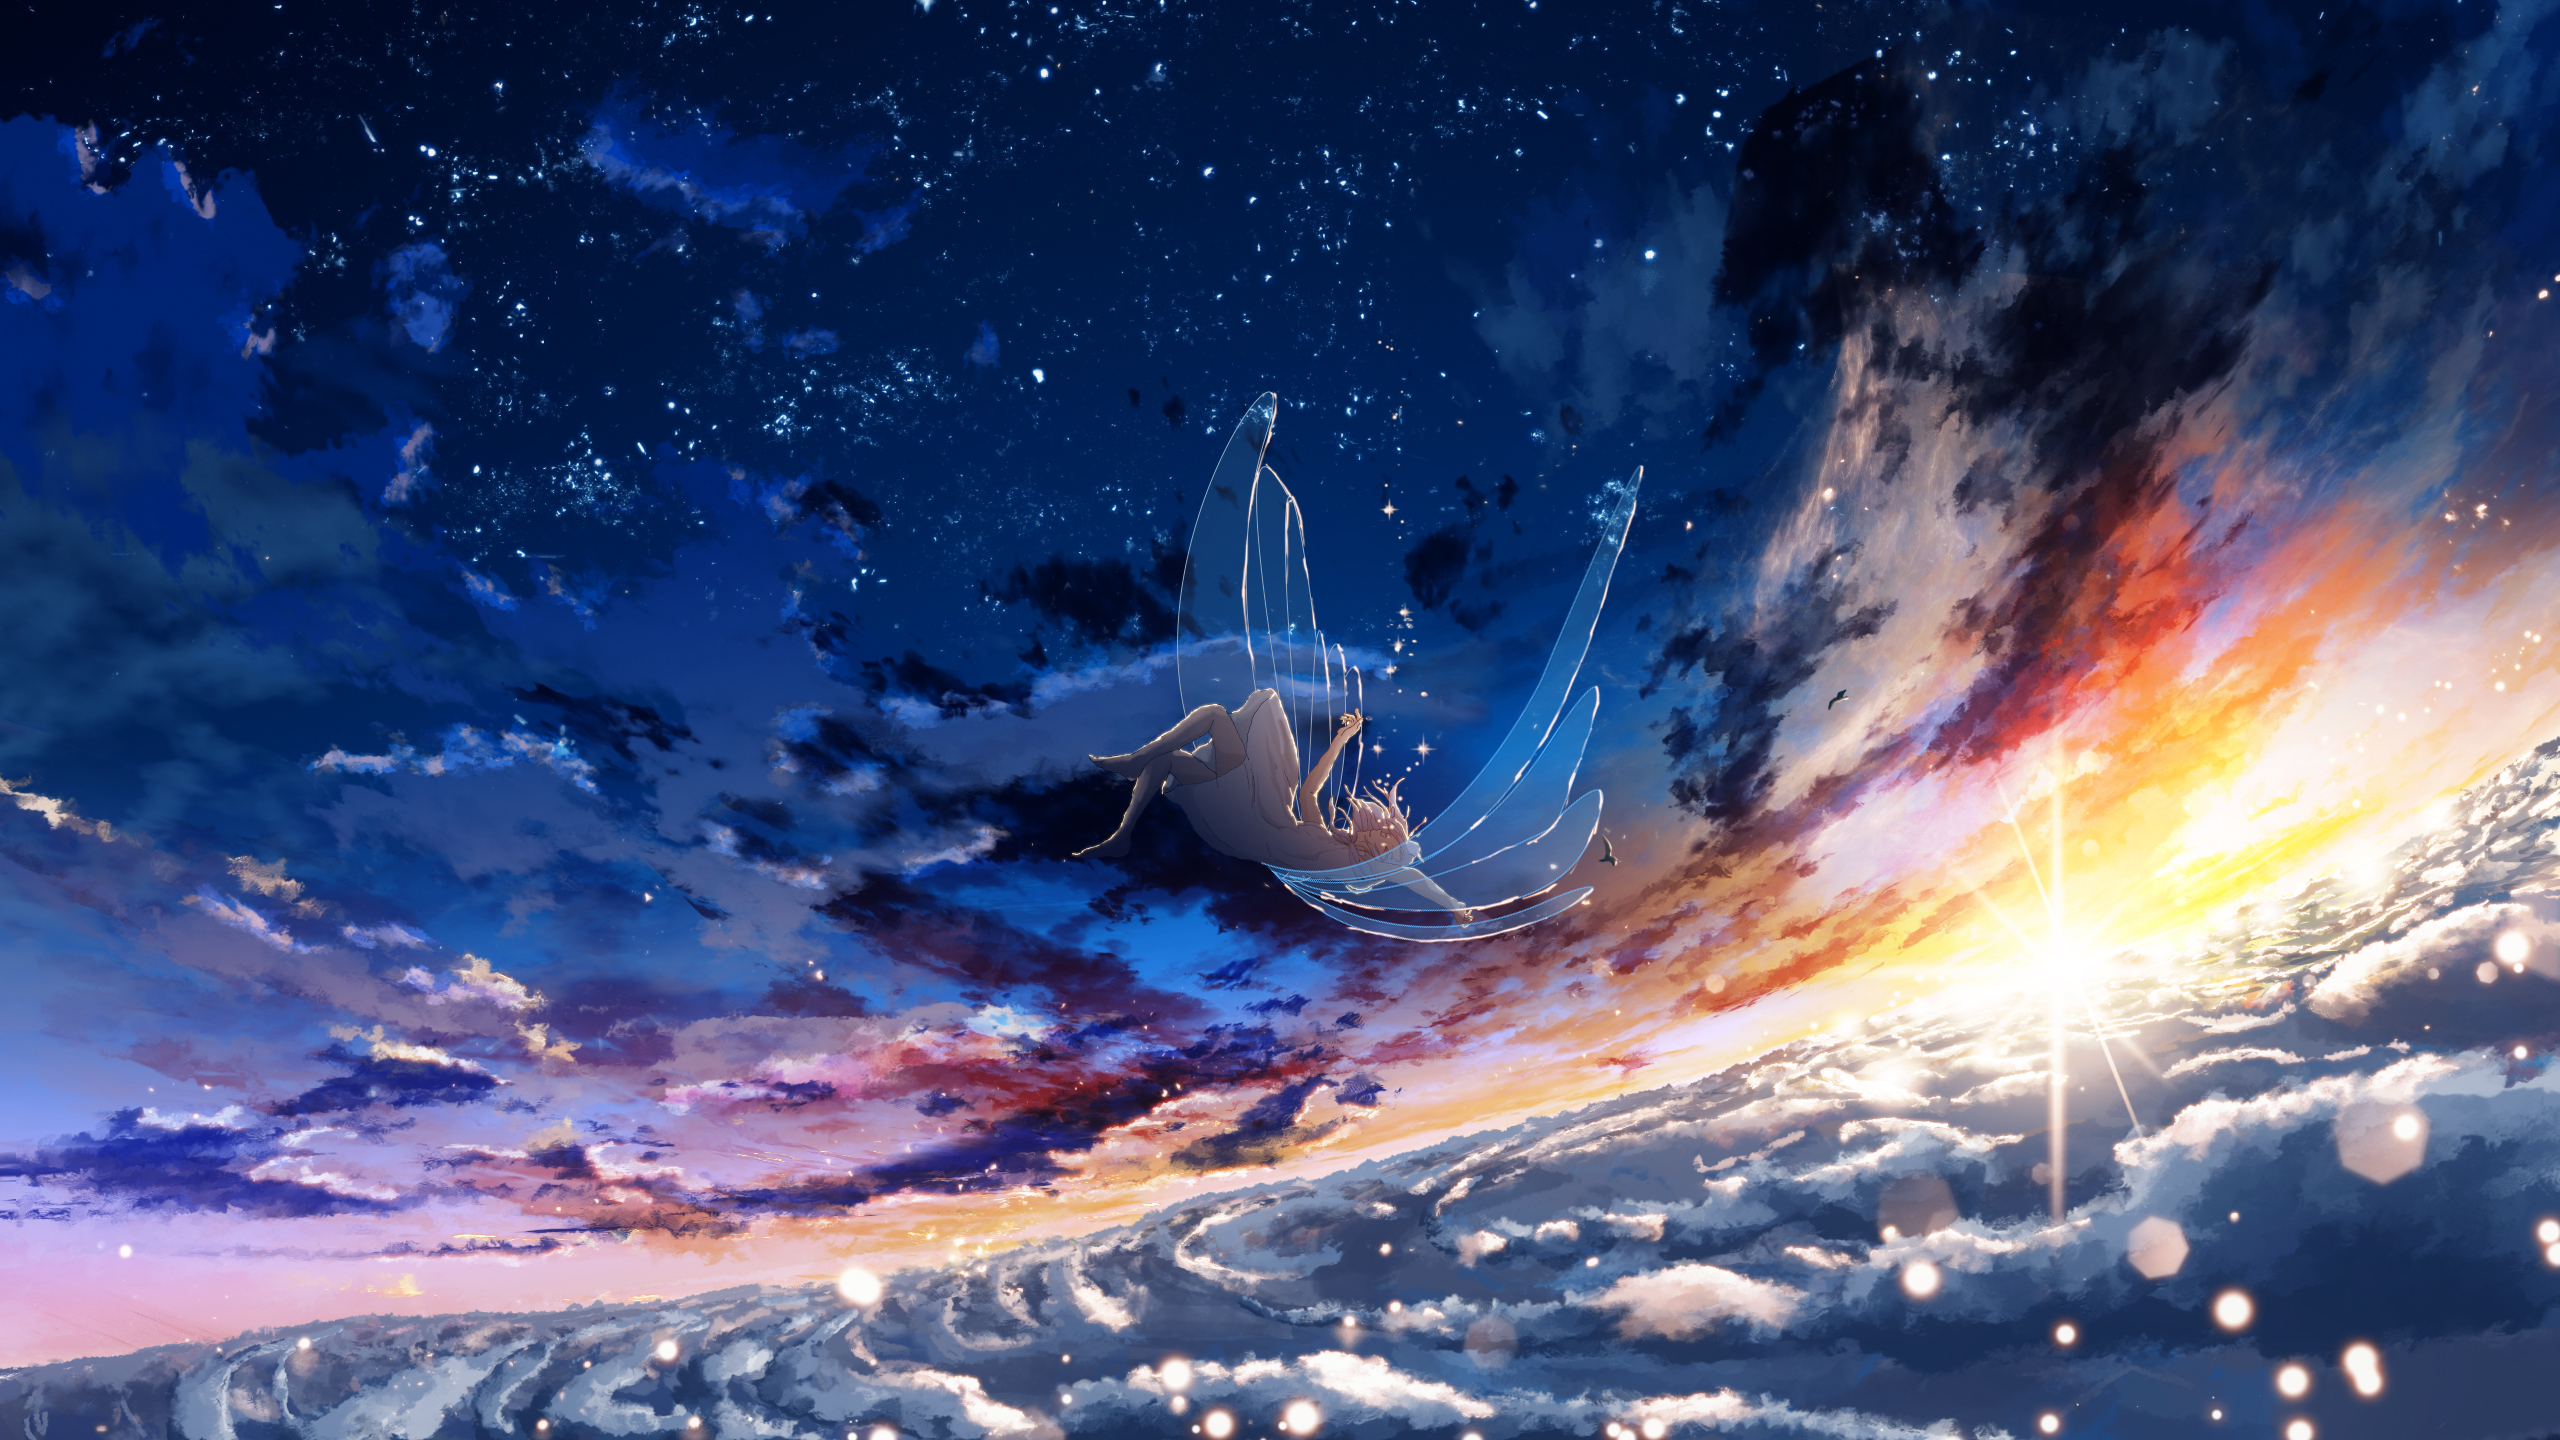 Anime 2560x1440 anime anime girls sky clouds sunlight blue wings